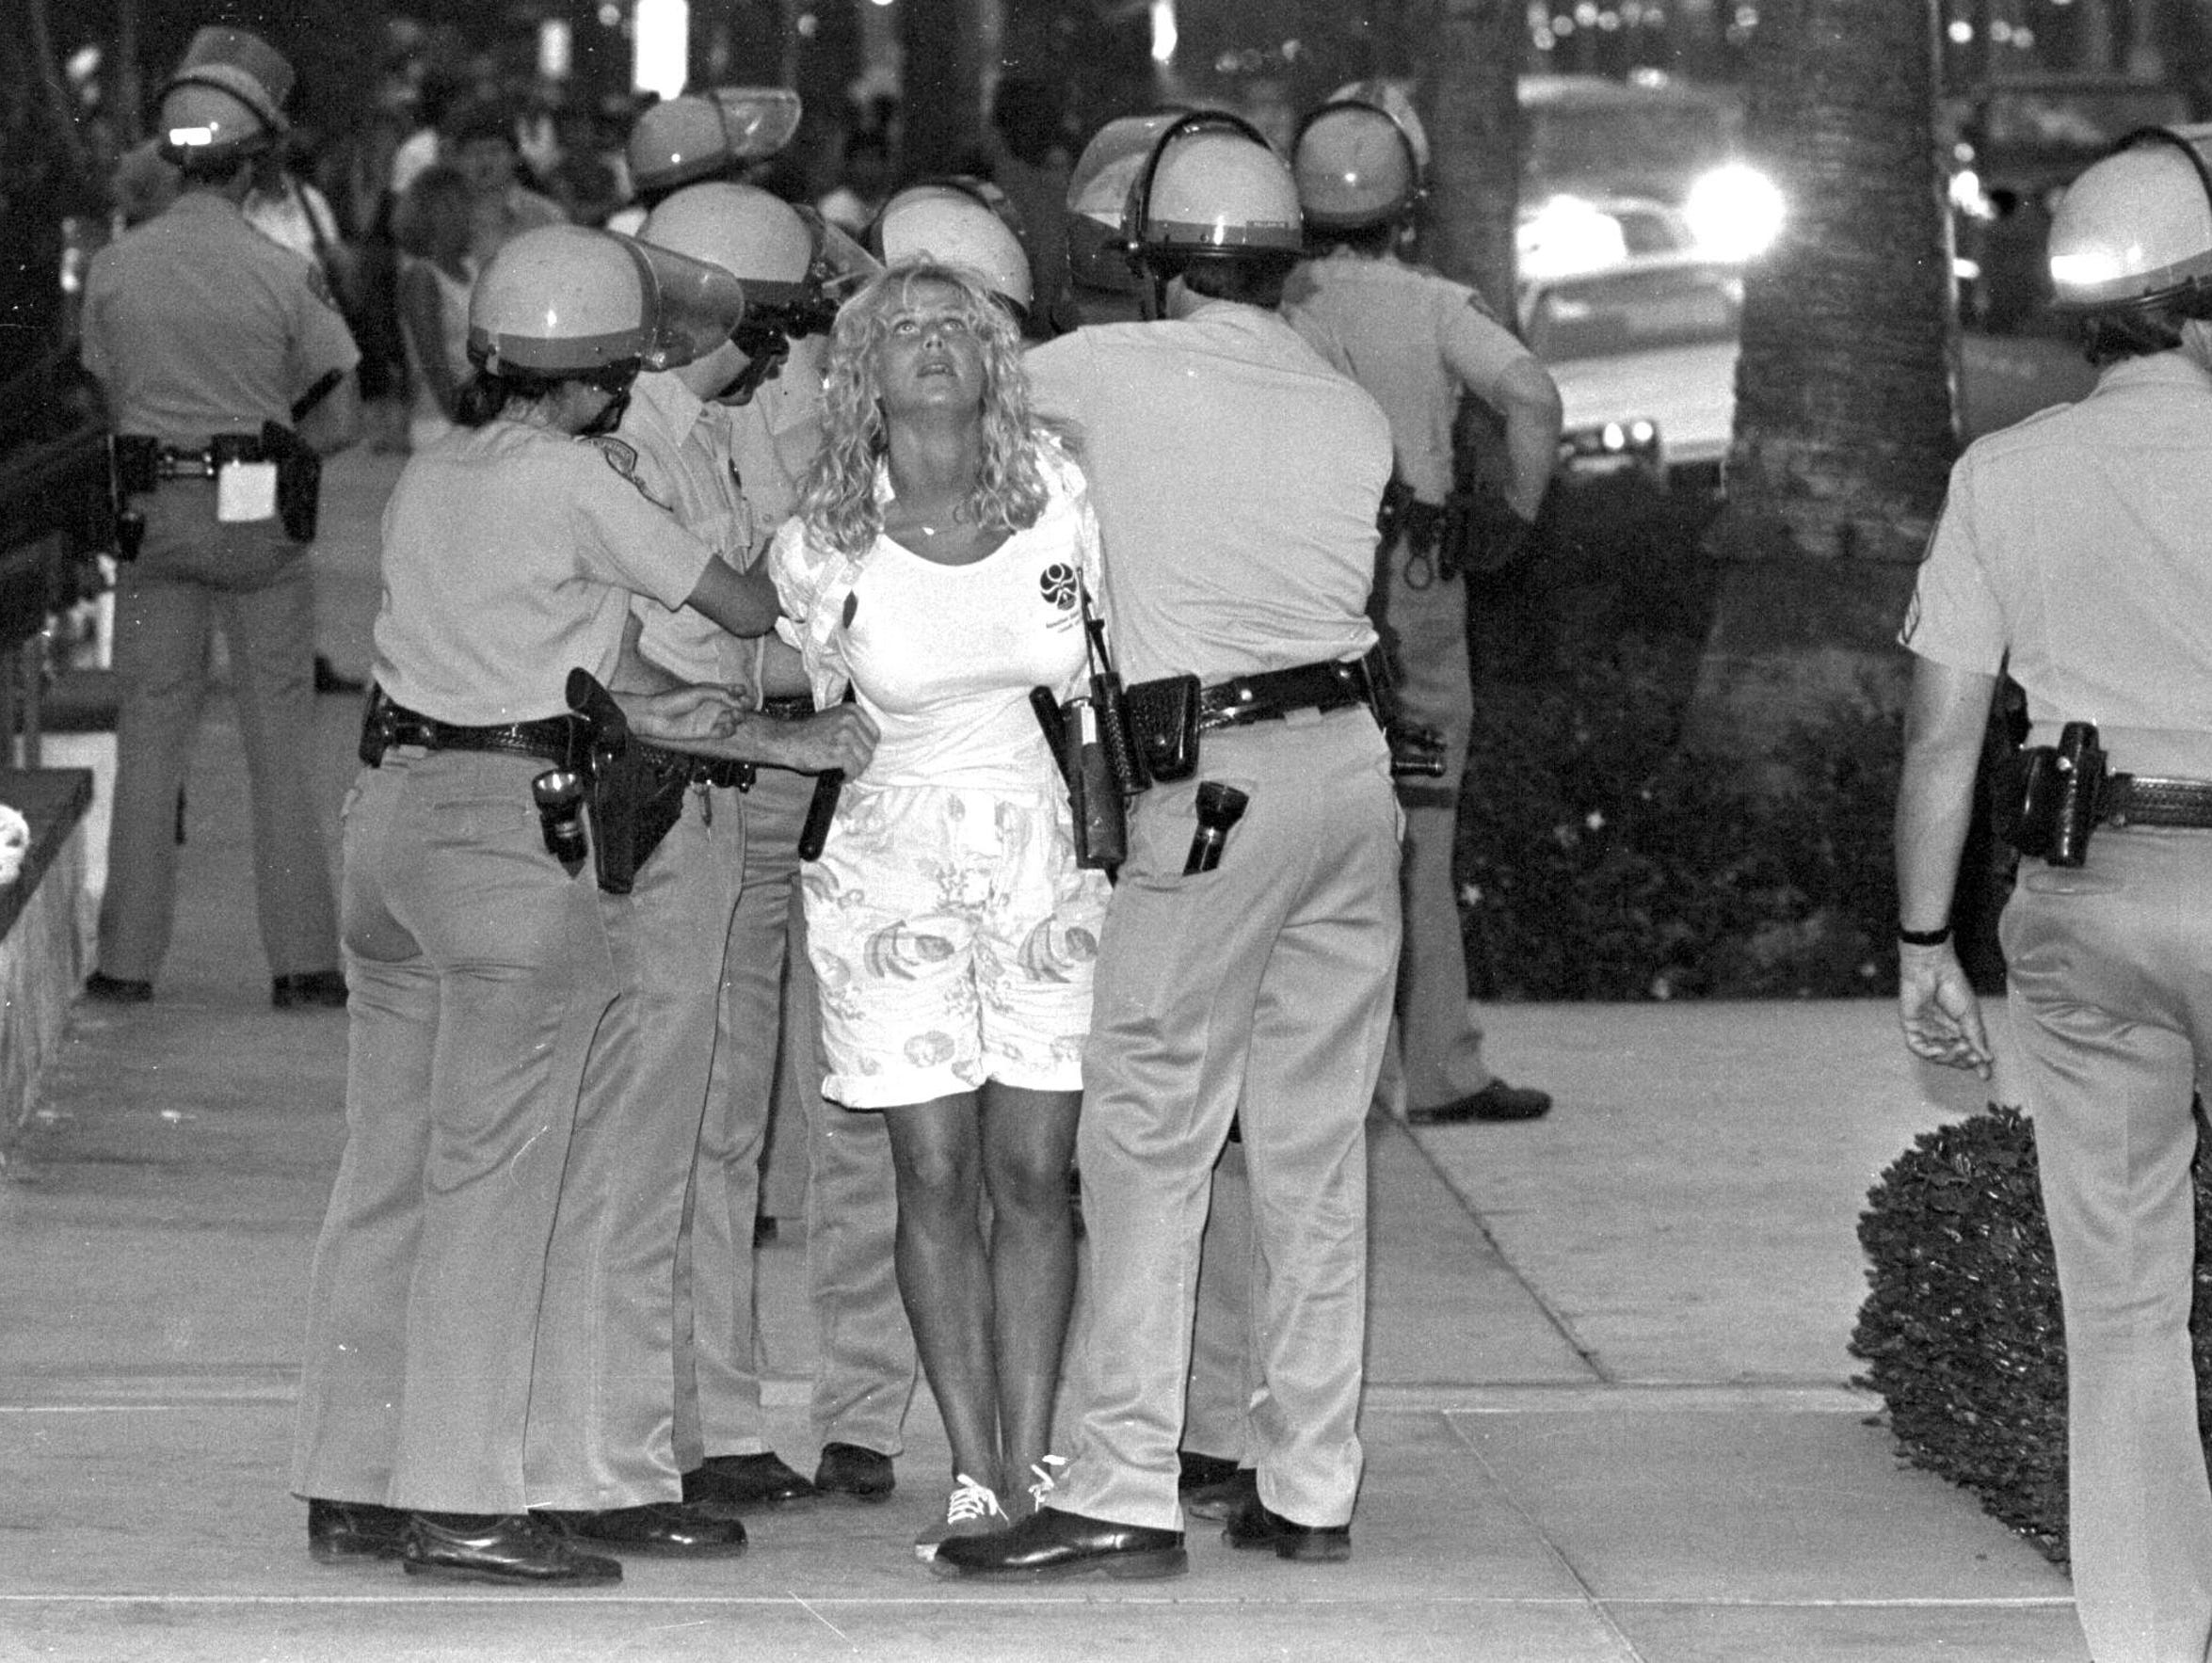 Palm Springs police arrest a spring breaker during a riot in March 1986. Hundreds of people were arrested and police ultimately had to use tear gas to disperse the mob